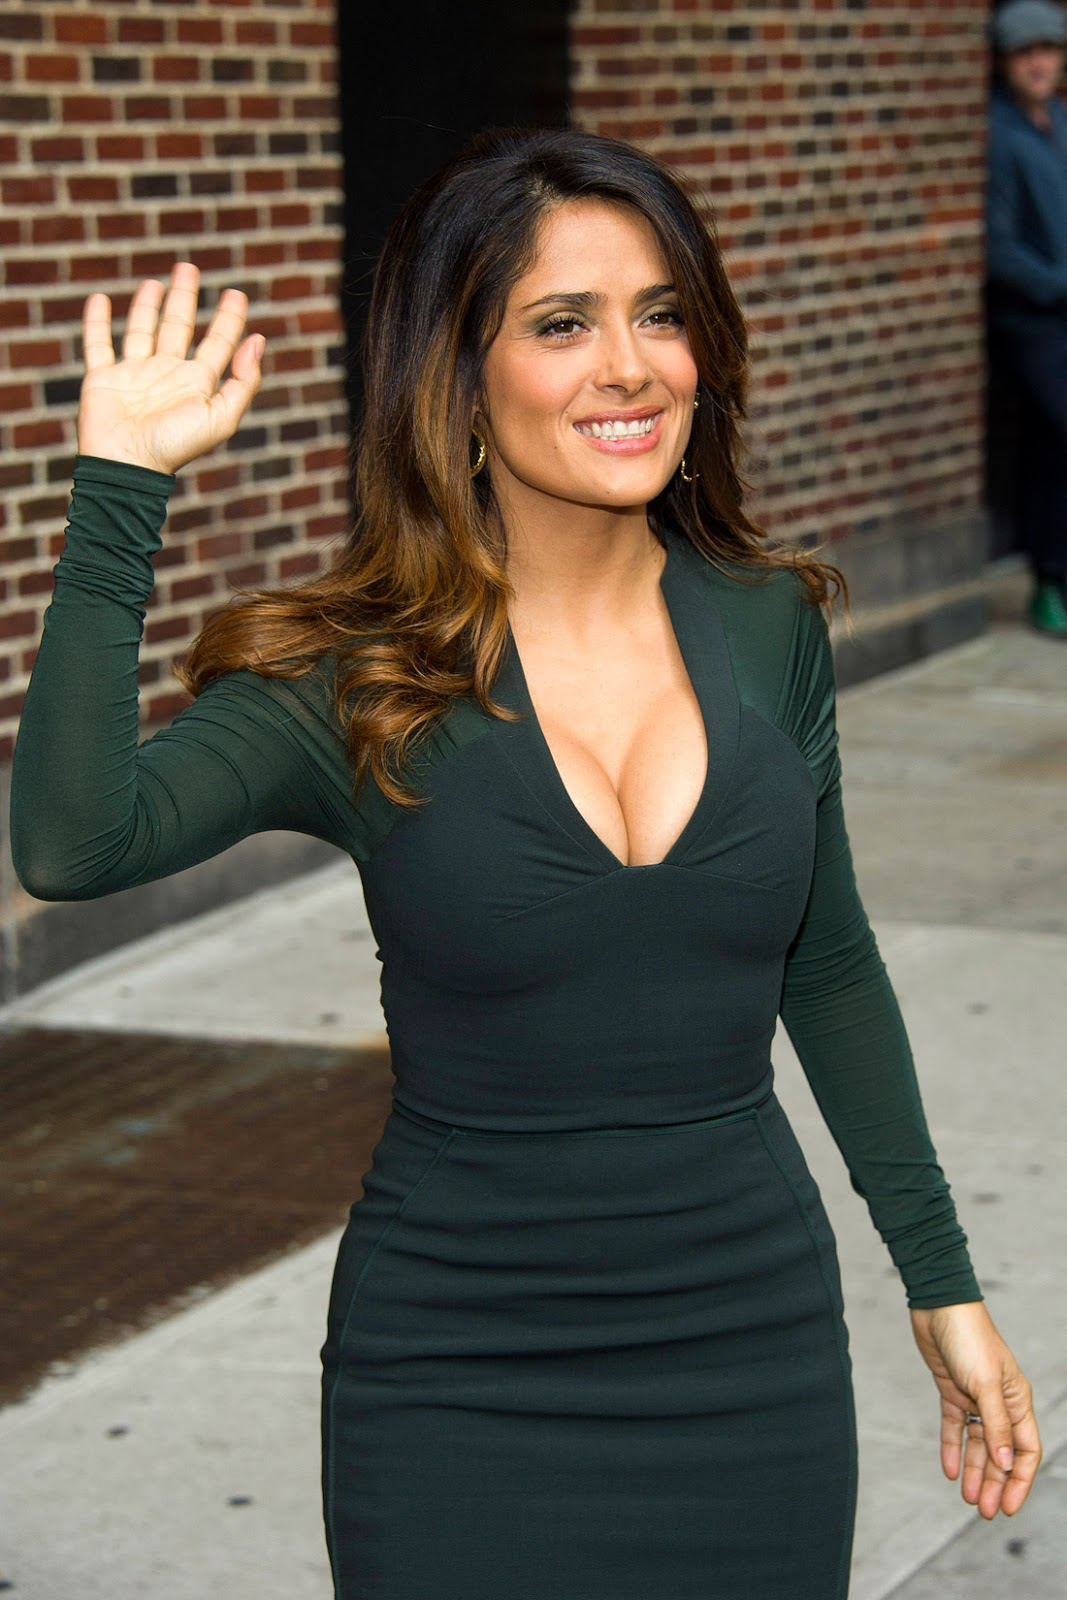 Salma Hayek The Hot Mexican  Salma Hayek Hot Pictures-6306